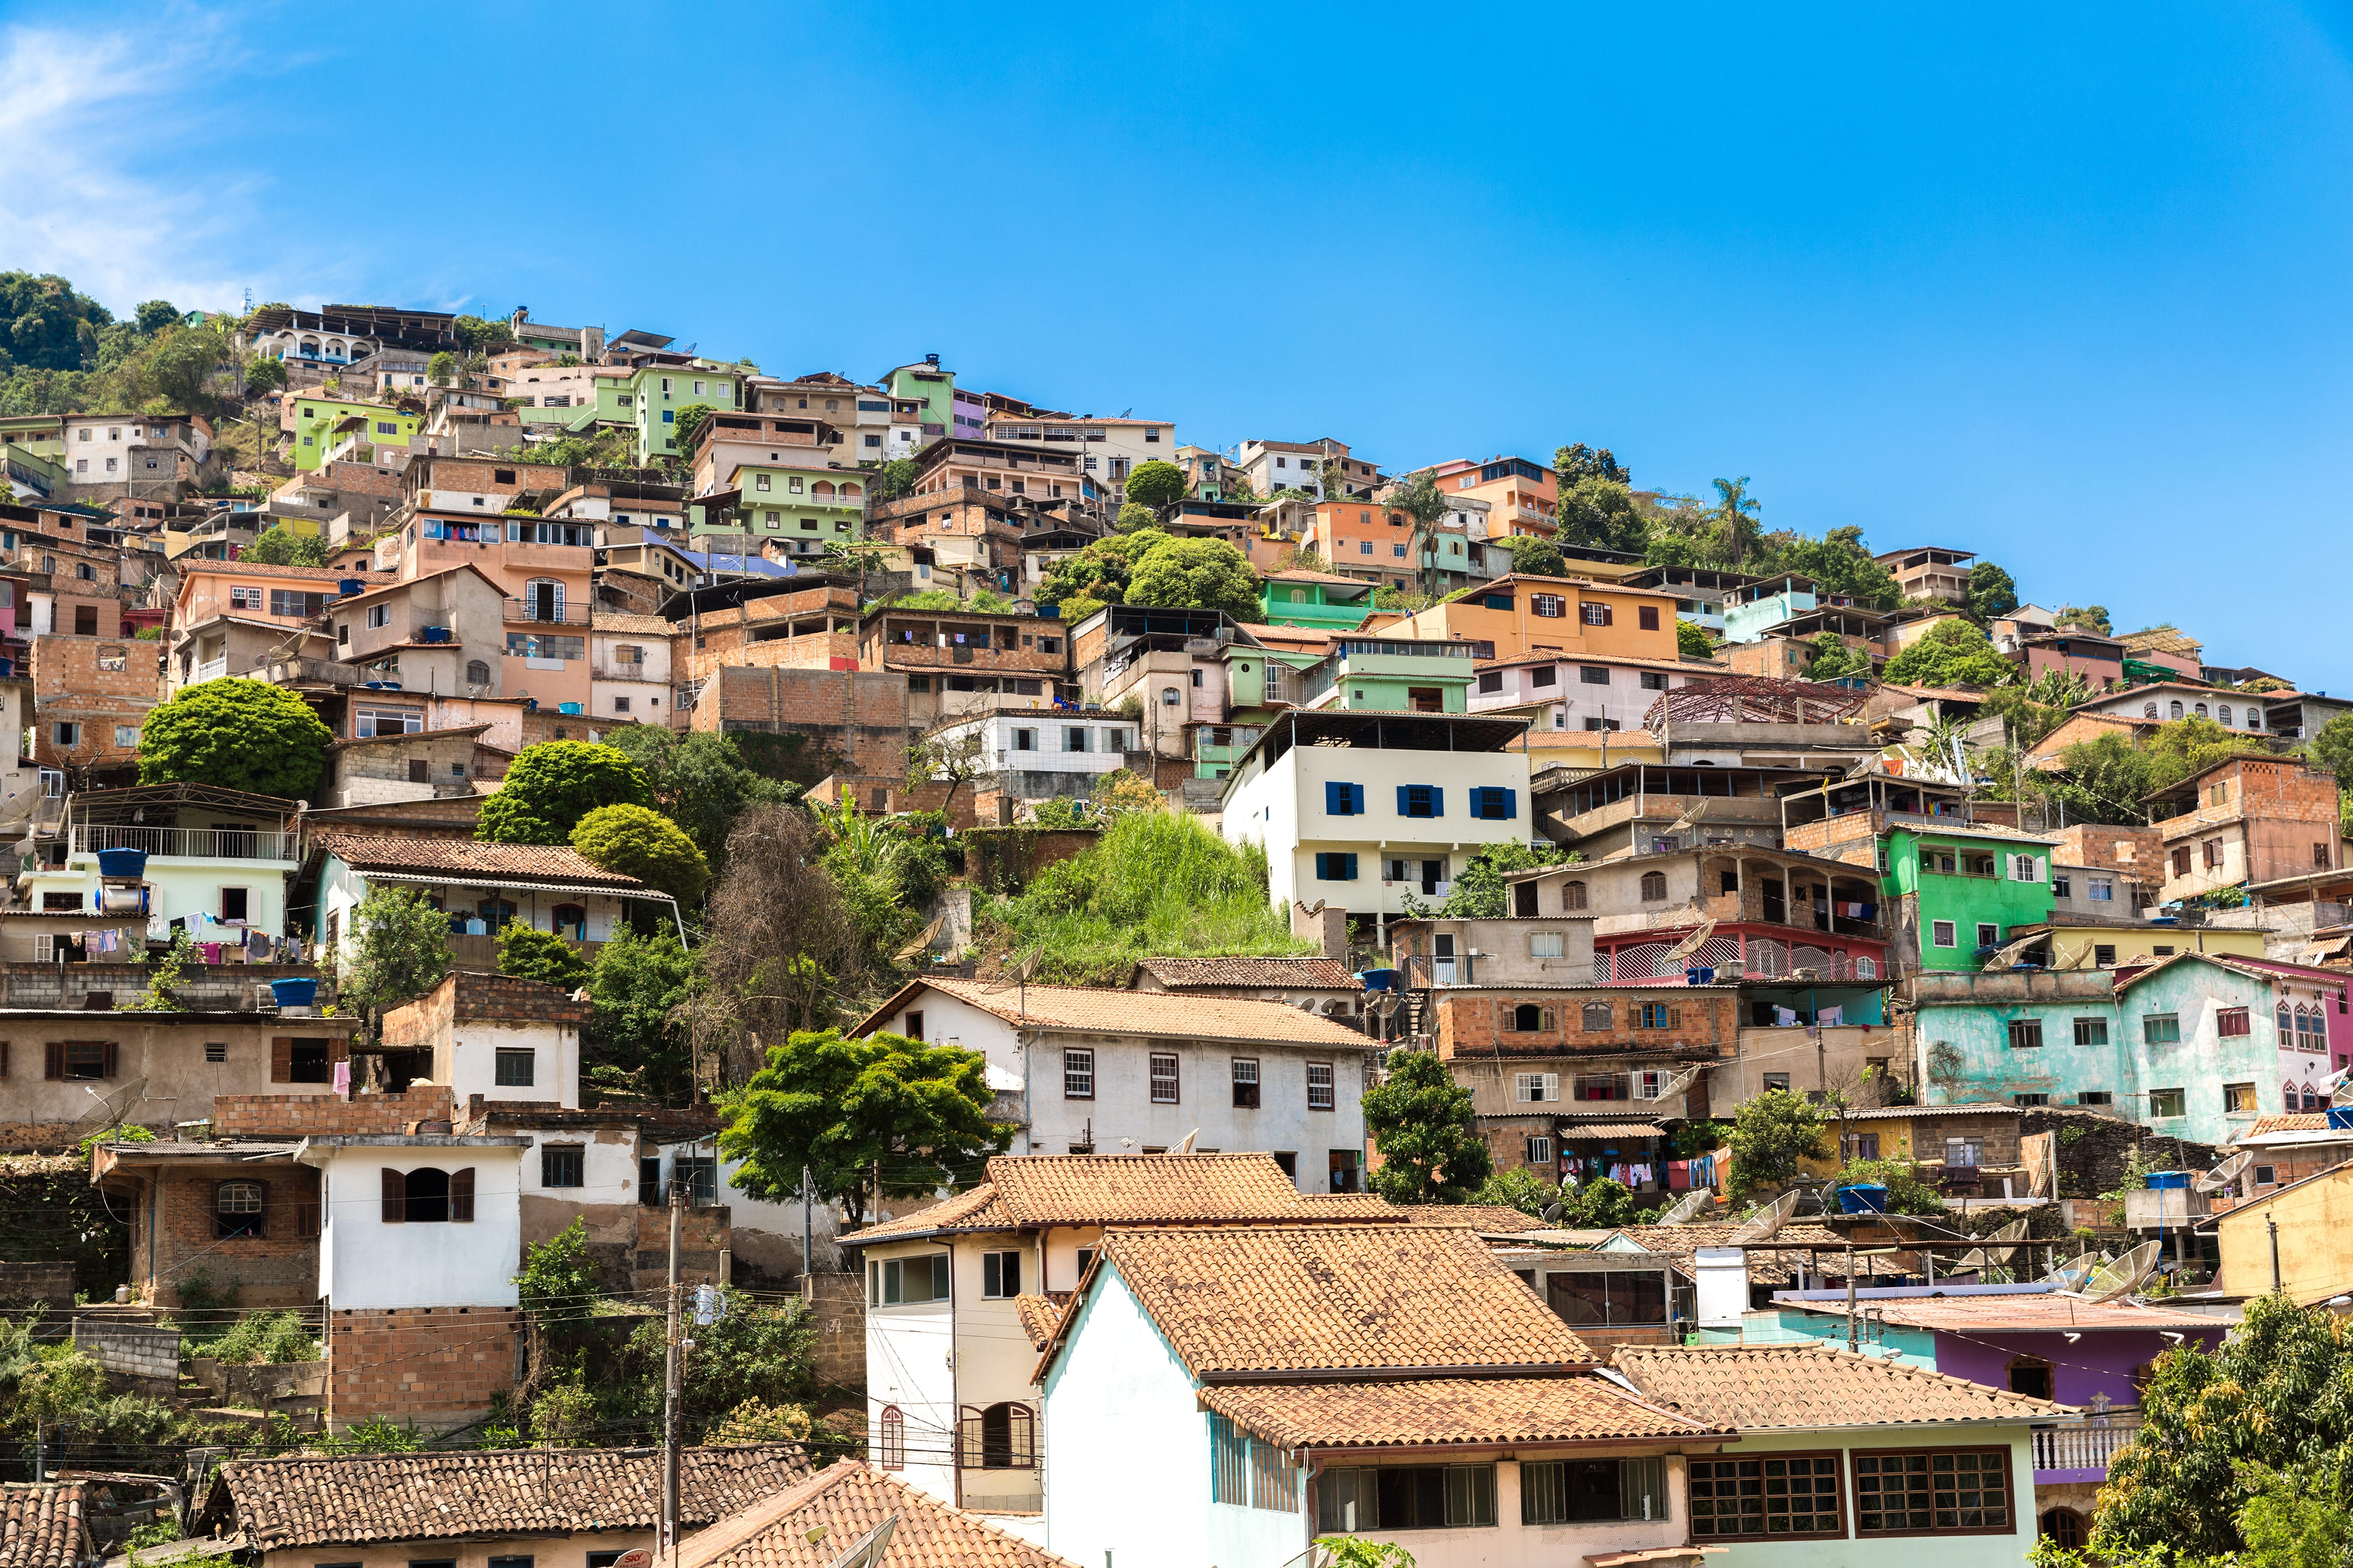 A very famous scenario in Brazil: the Favelas. The sky is blue and sunny. The neighbourhood is full of collors, but brown tones still prevails.